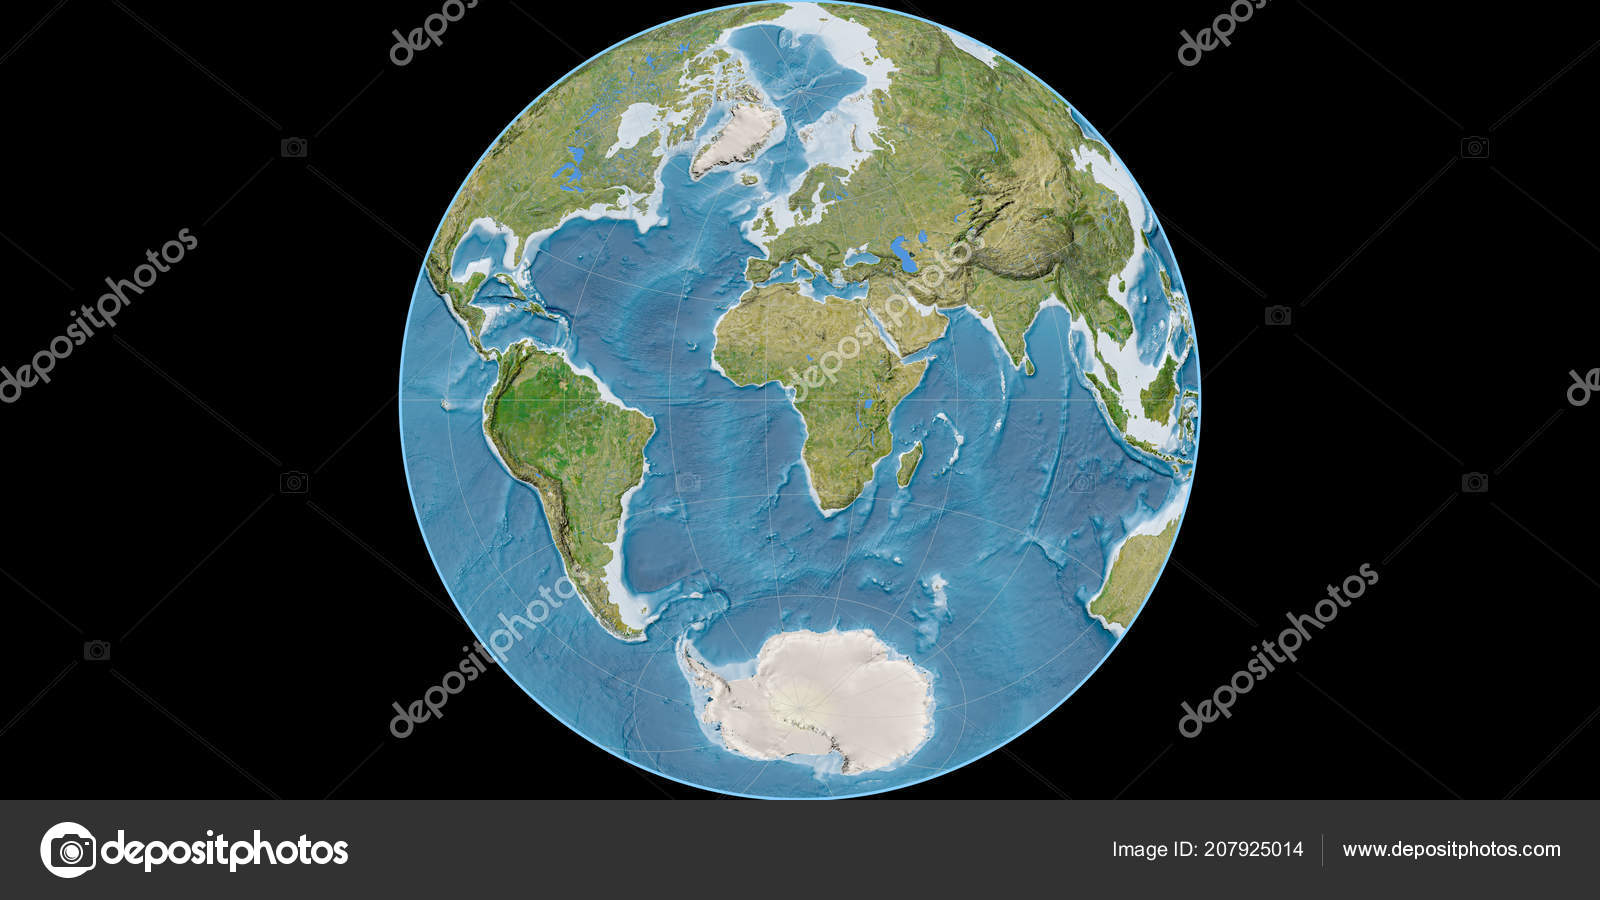 World map james azimuthal projection centered east longitude world map james azimuthal projection centered east longitude satellite imagery stock photo gumiabroncs Image collections